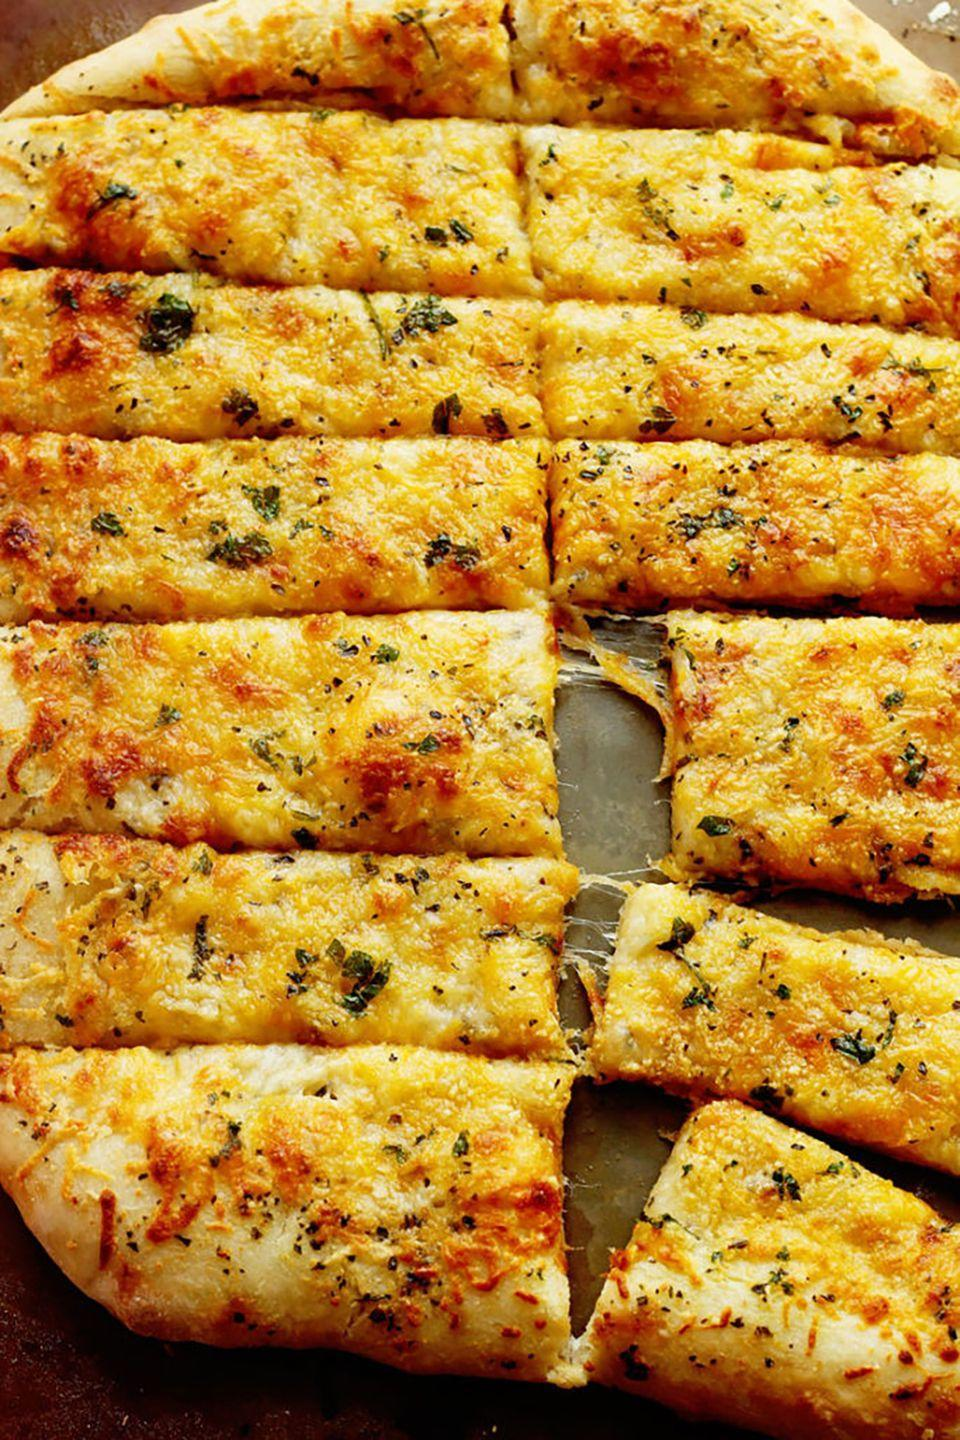 "<p>These breadsticks will put your favorite pizza place to shame. Serve them with warm pizza sauce for added flavor.</p><p><strong>Get the recipe at <a href=""http://www.grandbaby-cakes.com/2015/01/cheese-breadsticks/"" rel=""nofollow noopener"" target=""_blank"" data-ylk=""slk:Grandbaby Cakes"" class=""link rapid-noclick-resp"">Grandbaby Cakes</a>.</strong></p>"